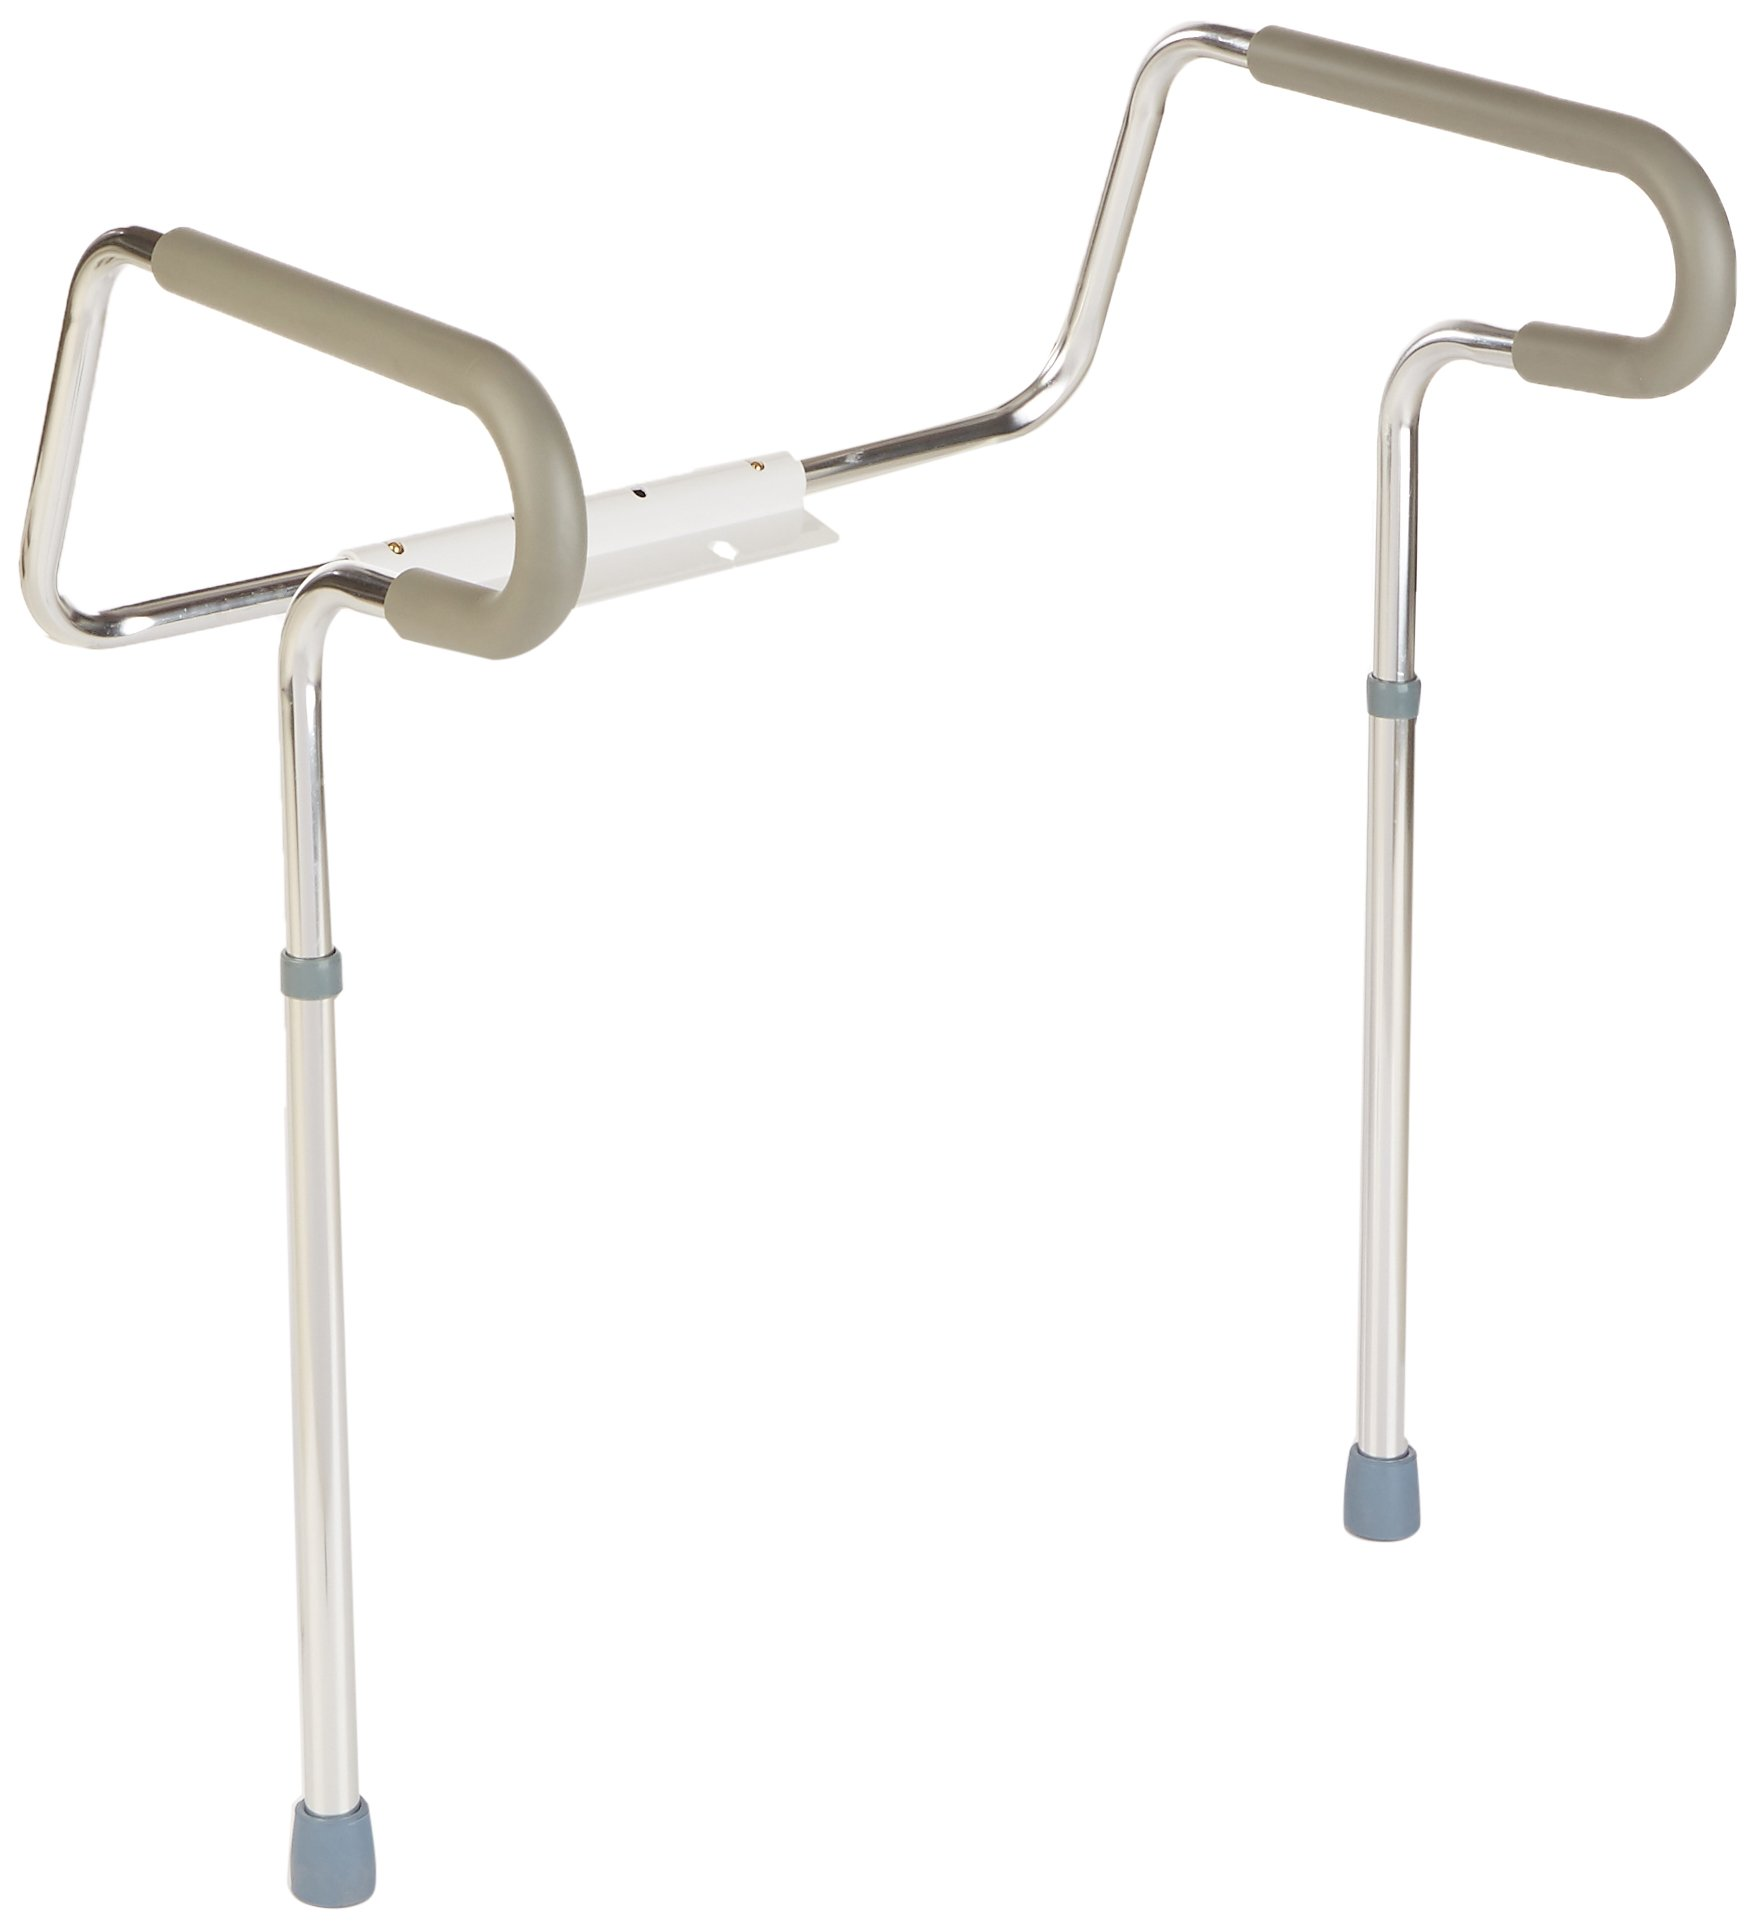 Sammons Preston Toilet Safety Frame, Toilet Handles for Elderly, Adjustable Commode Rails for Fall Prevention, Limited Mobility, Disabled, Injury, Surgery Recovery, 300 lbs Weight Capacity by Sammons Preston